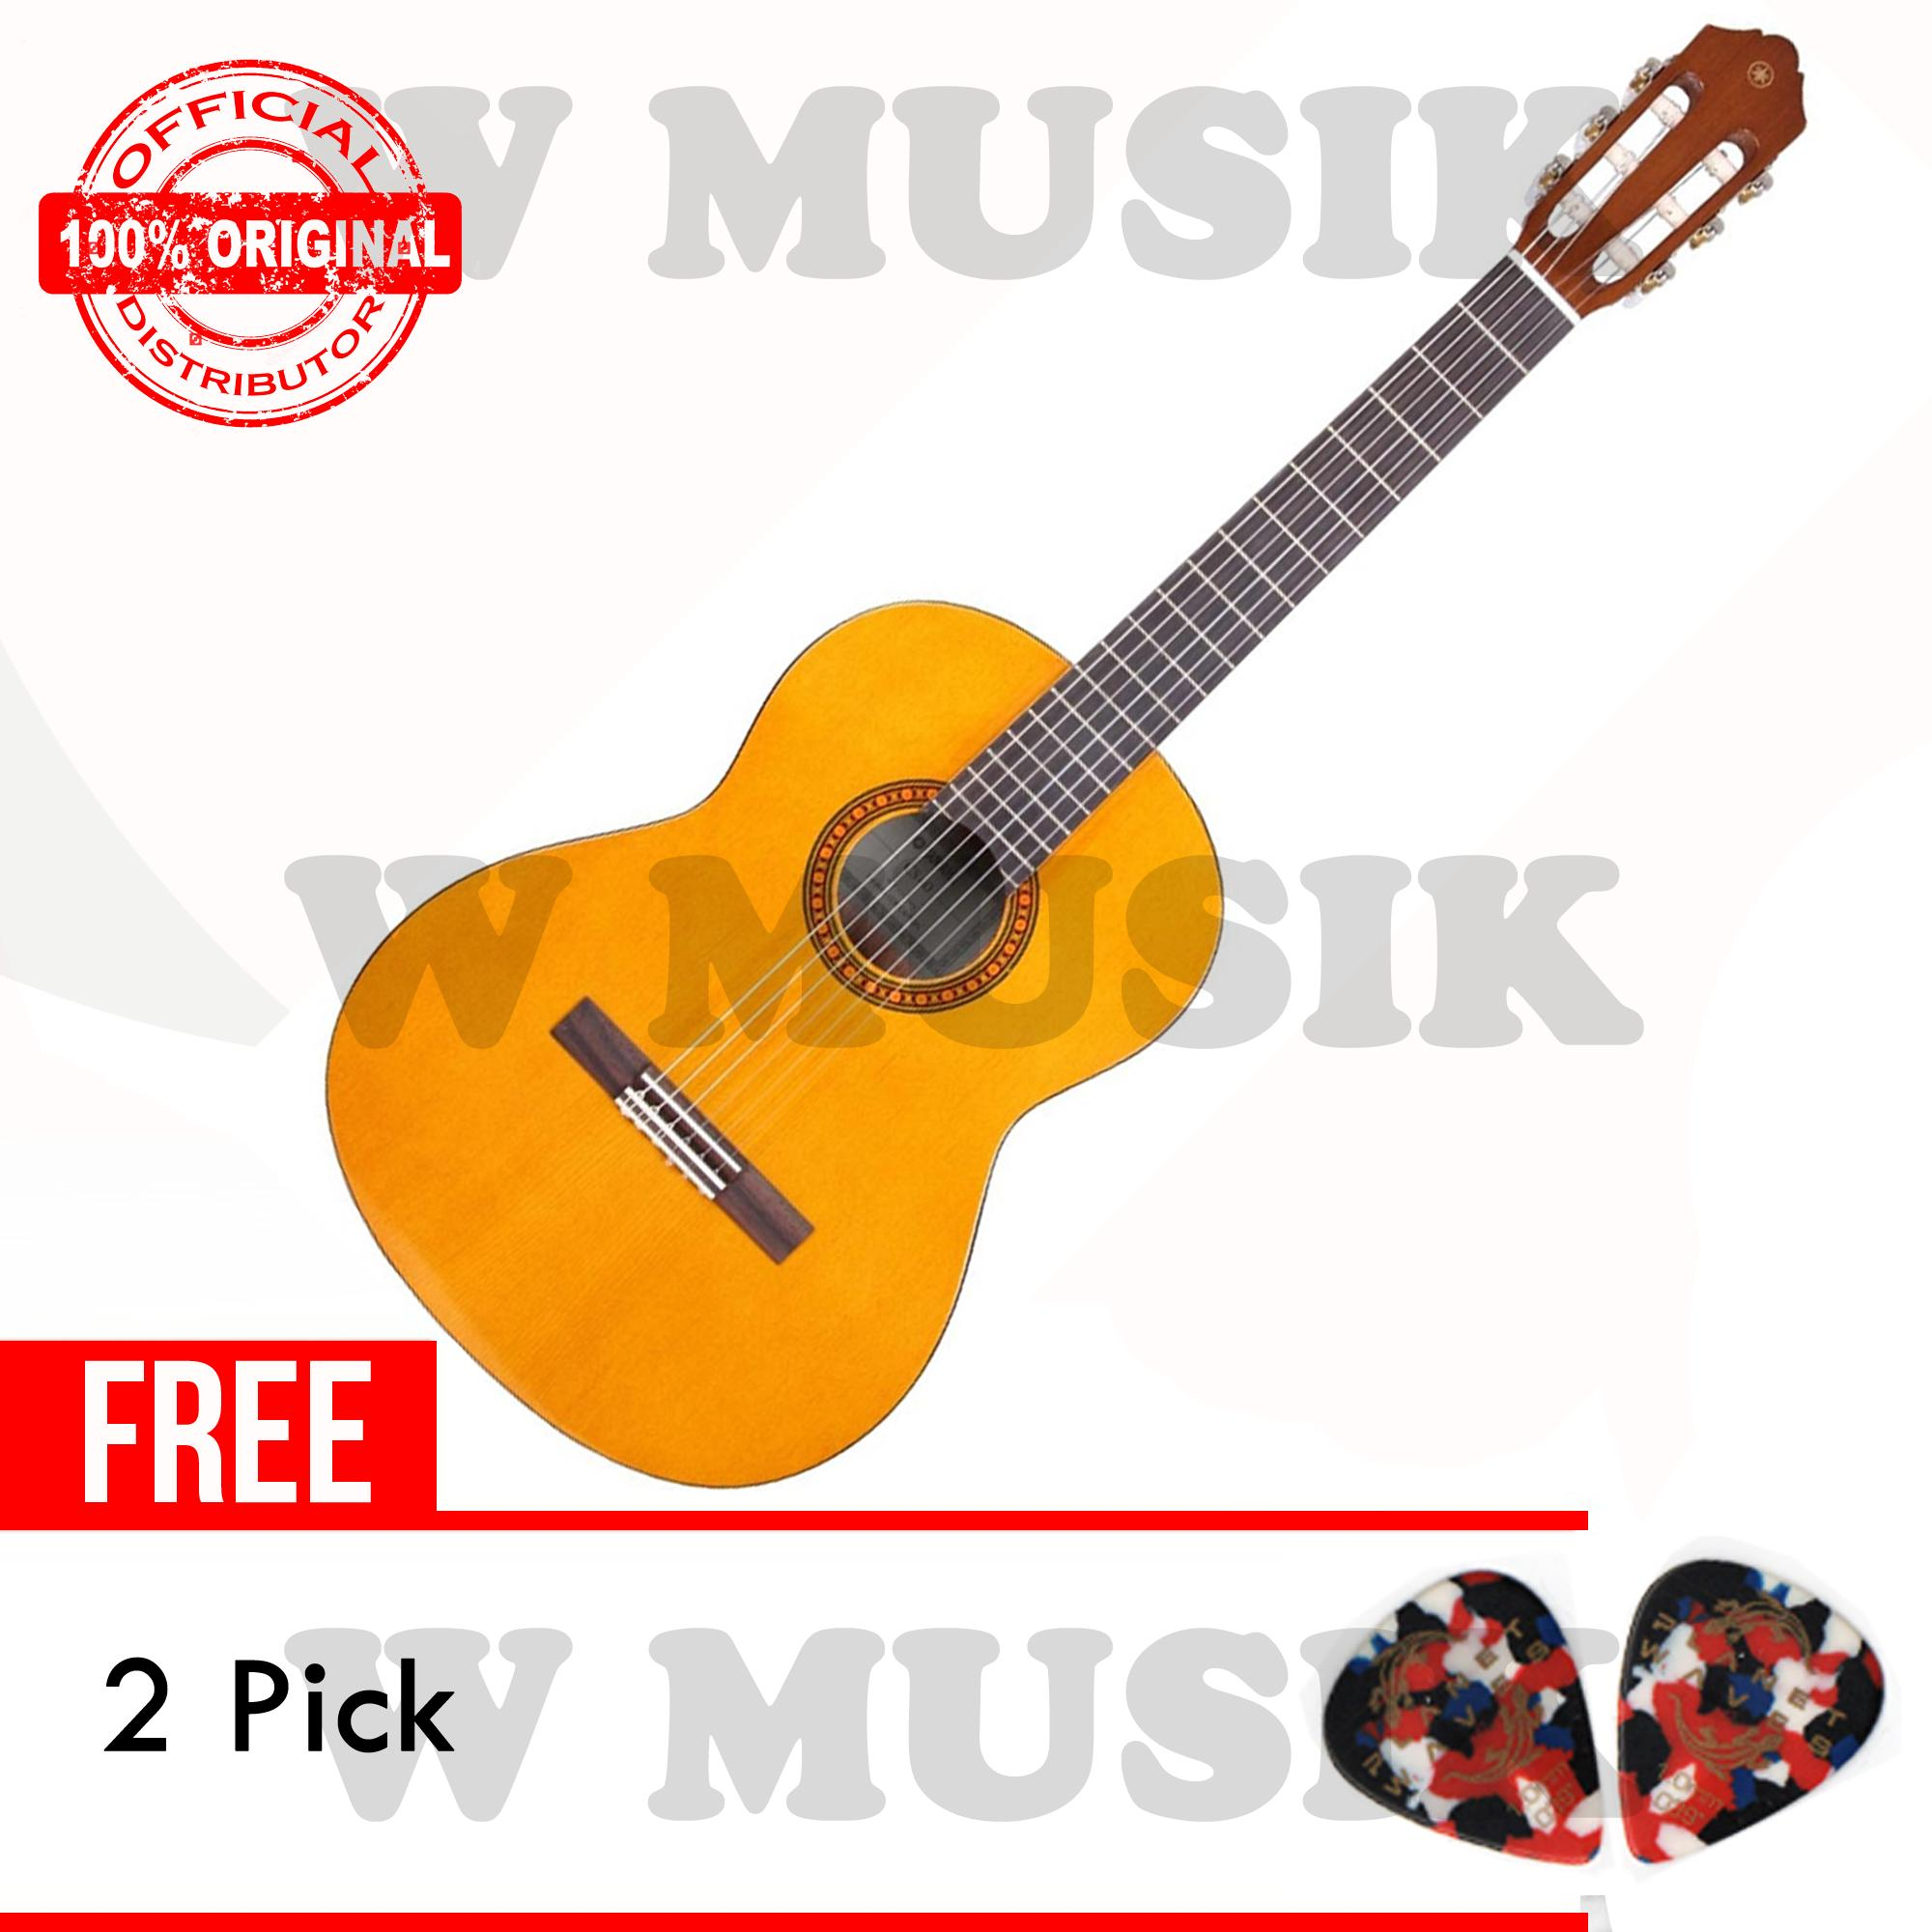 Jual Yamaha Gitar Klasik 3 4 Cs40 Cs 40 Natural 2 Pick Original